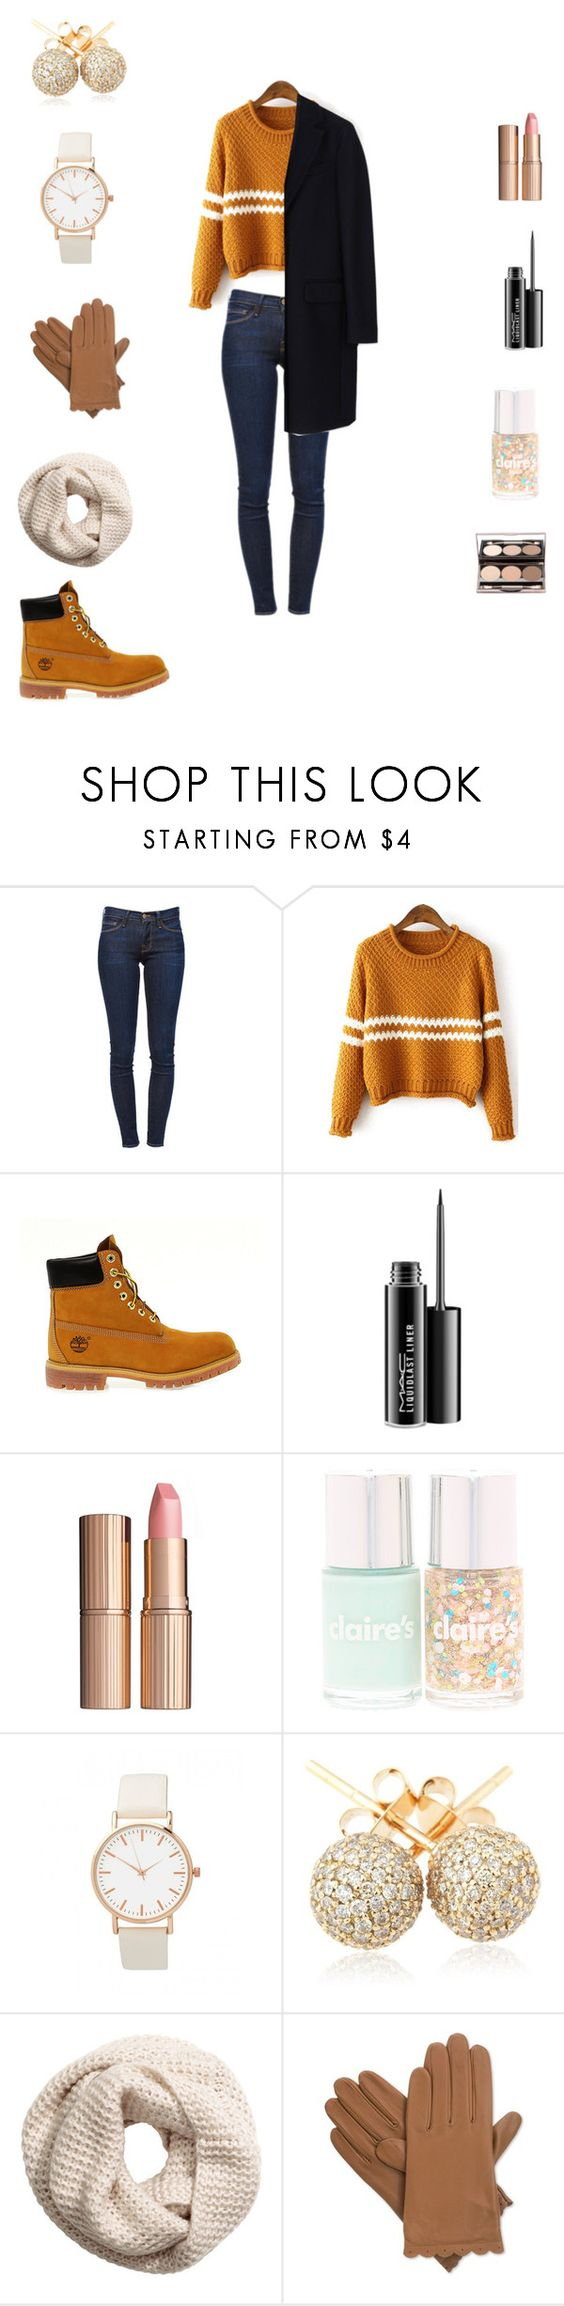 """Sans titre #10"" by paolala3810 ❤ liked on Polyvore featuring Frame Denim, Timberland, MAC Cosmetics, Charlotte Tilbury, Loushelou, H&M, Isotoner and MSGM"